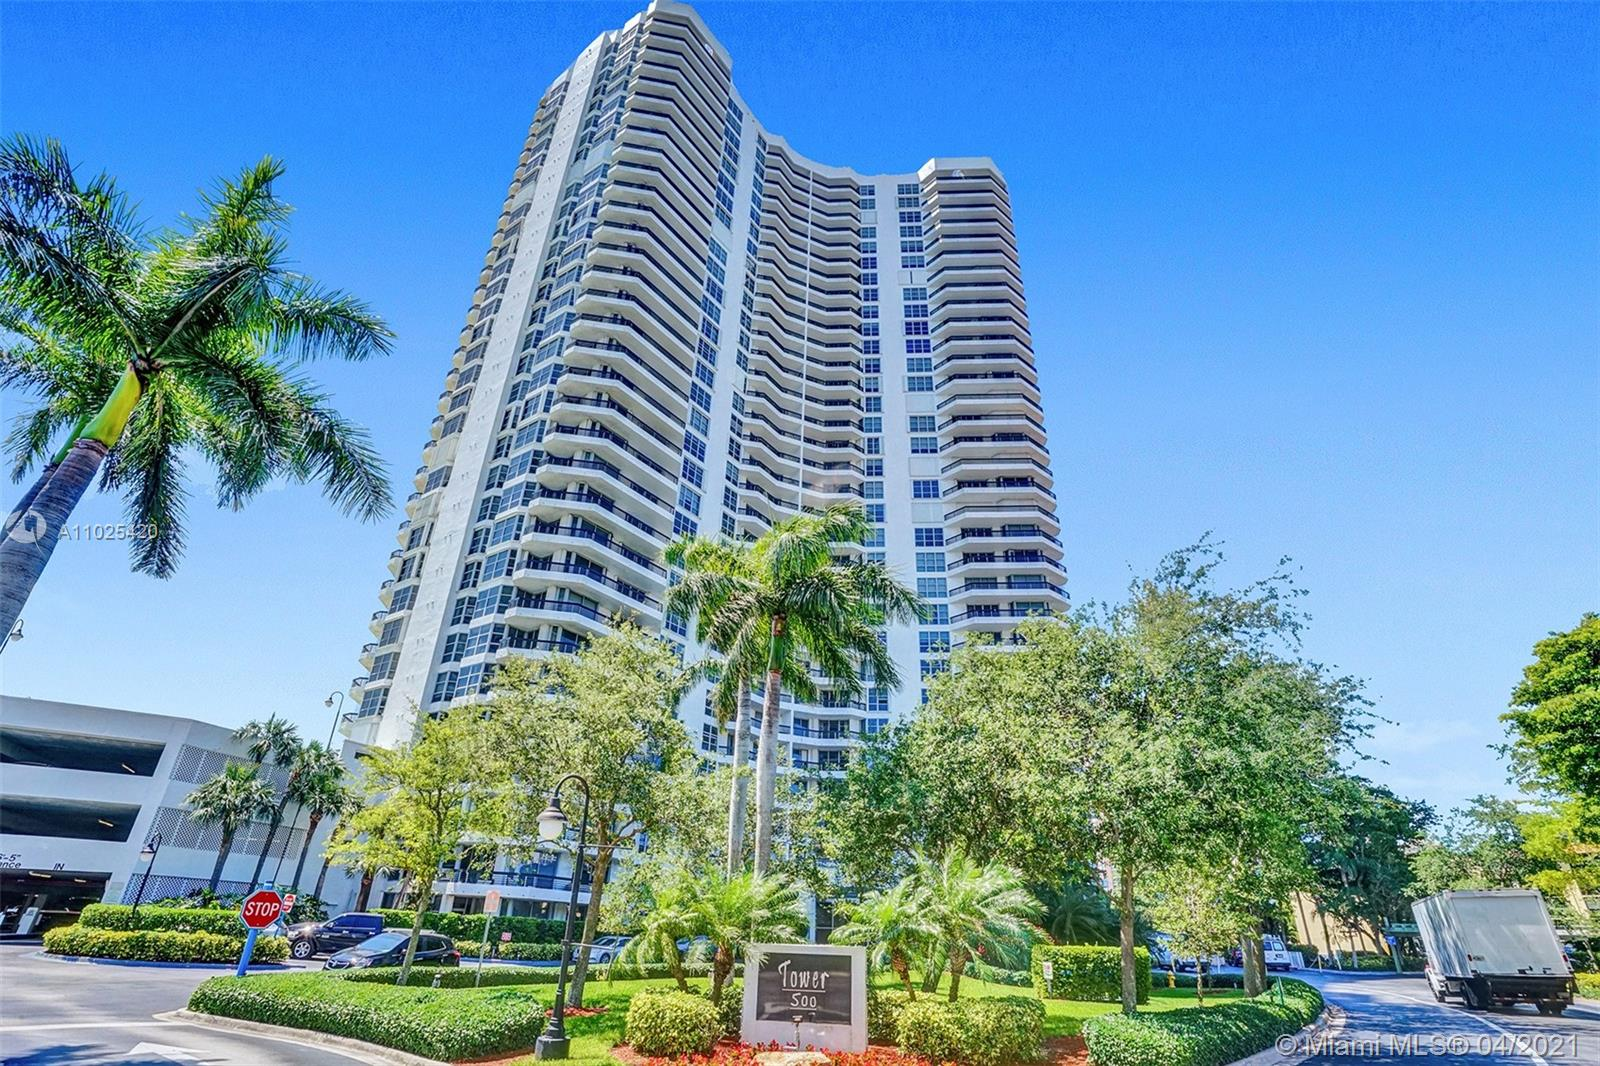 Mystic Pointe Tower 500 #2708 - 3530 Mystic Pointe Dr #2708, Aventura, FL 33180